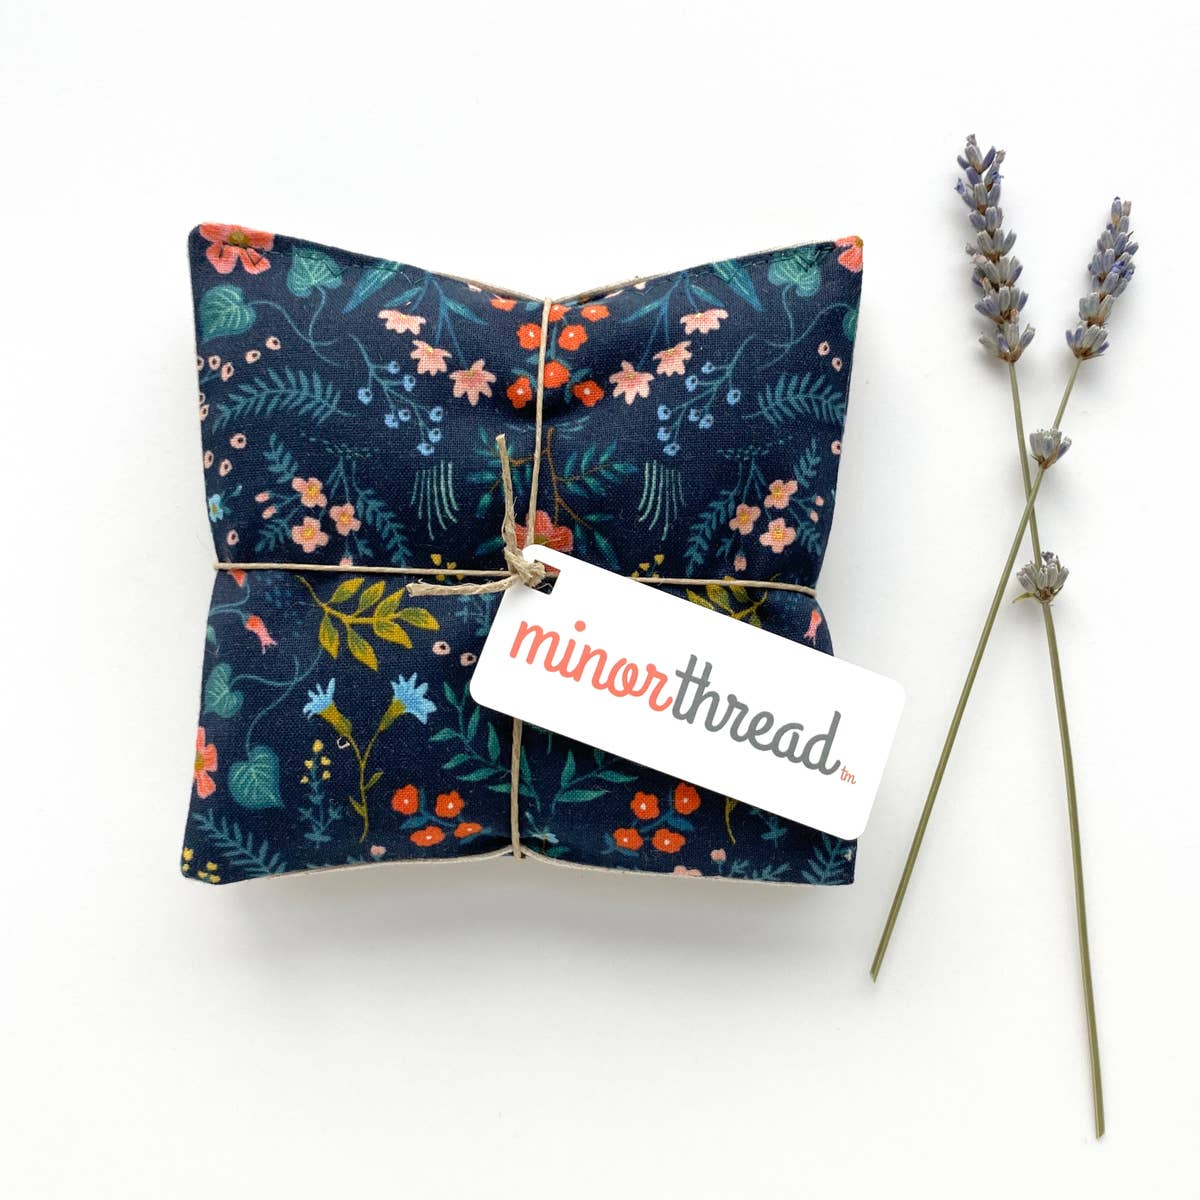 Organic Lavender Sachets in Wildwood Navy - Set of 2